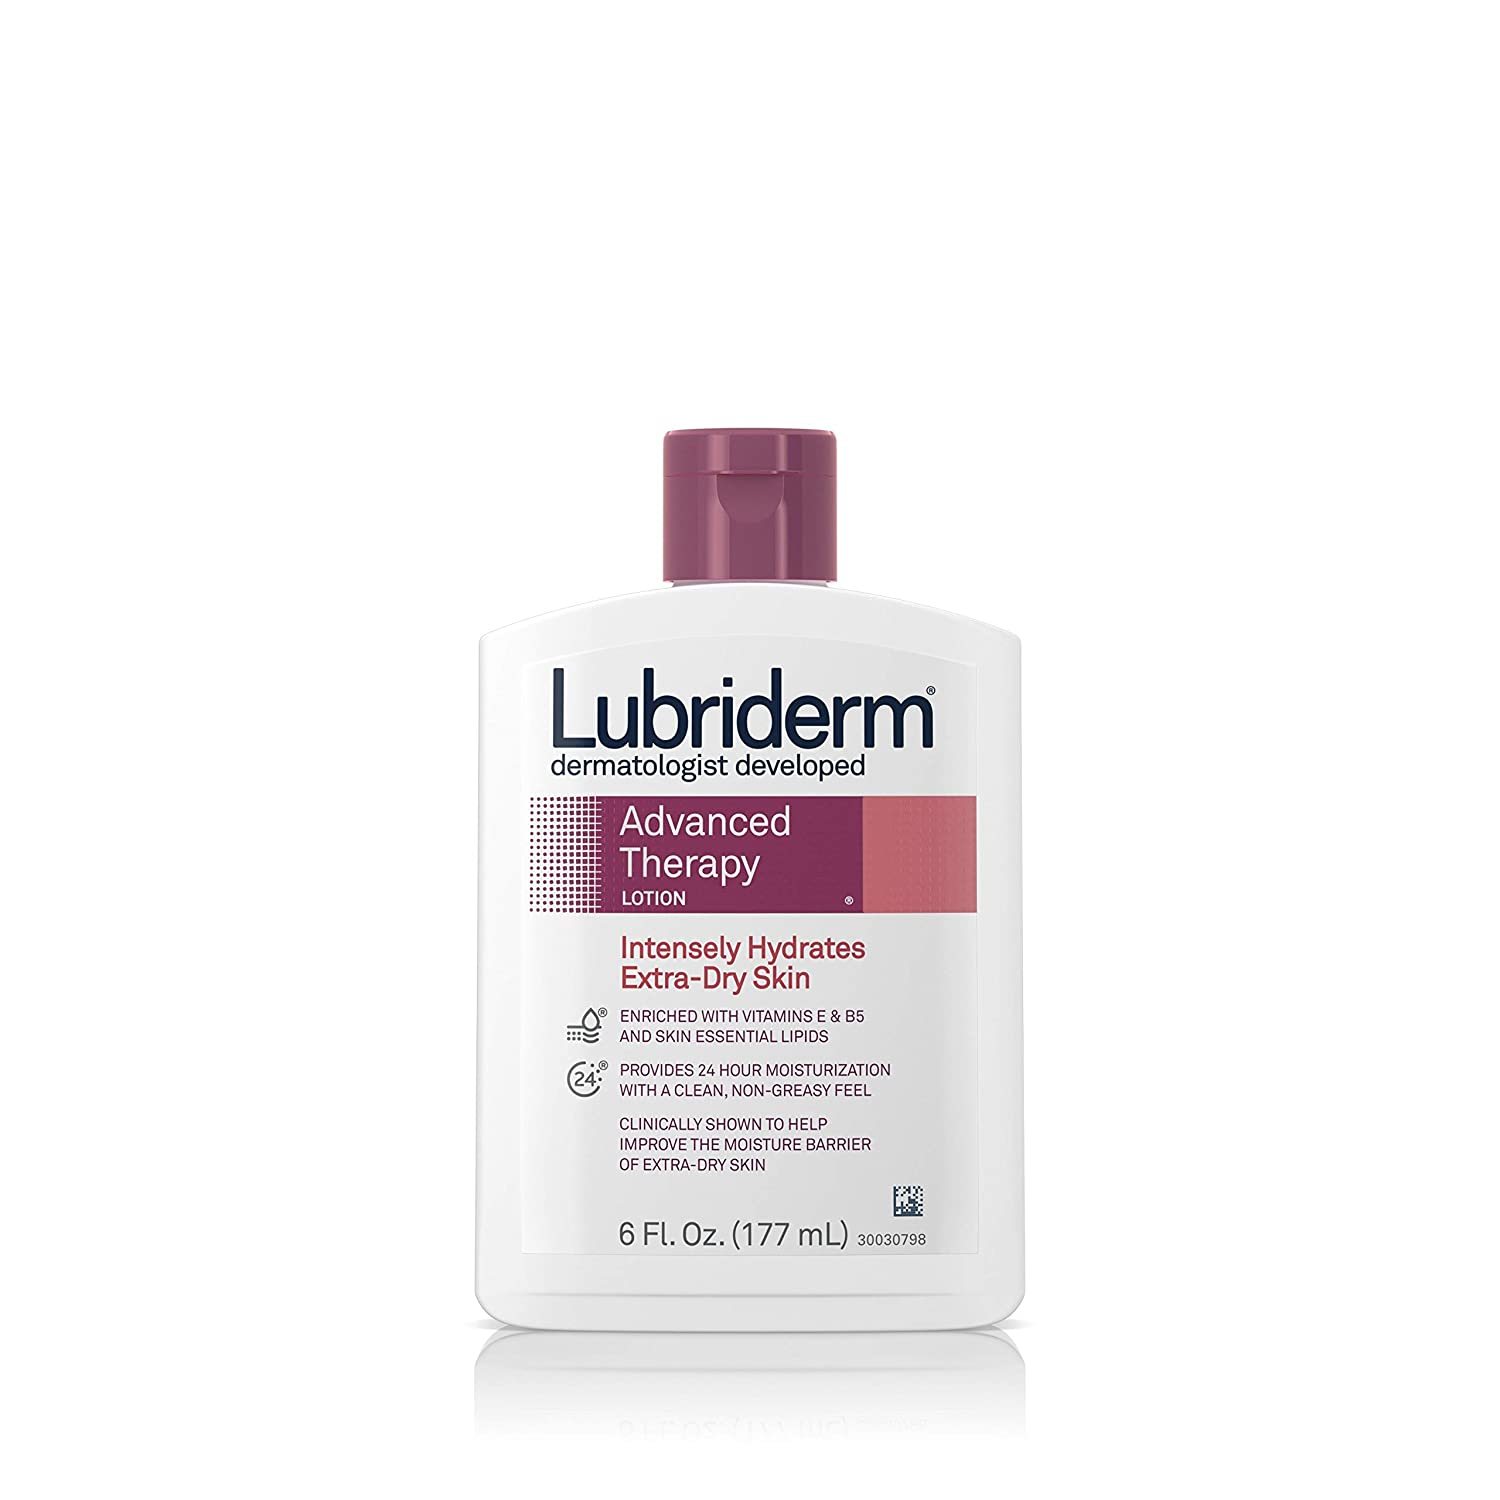 Lubriderm Advanced Therapy Moisturizing Lotion with Vitamins E and B5, Deep Hydration for Extra Dry Skin, Non-Greasy Formula, 6 fl. oz